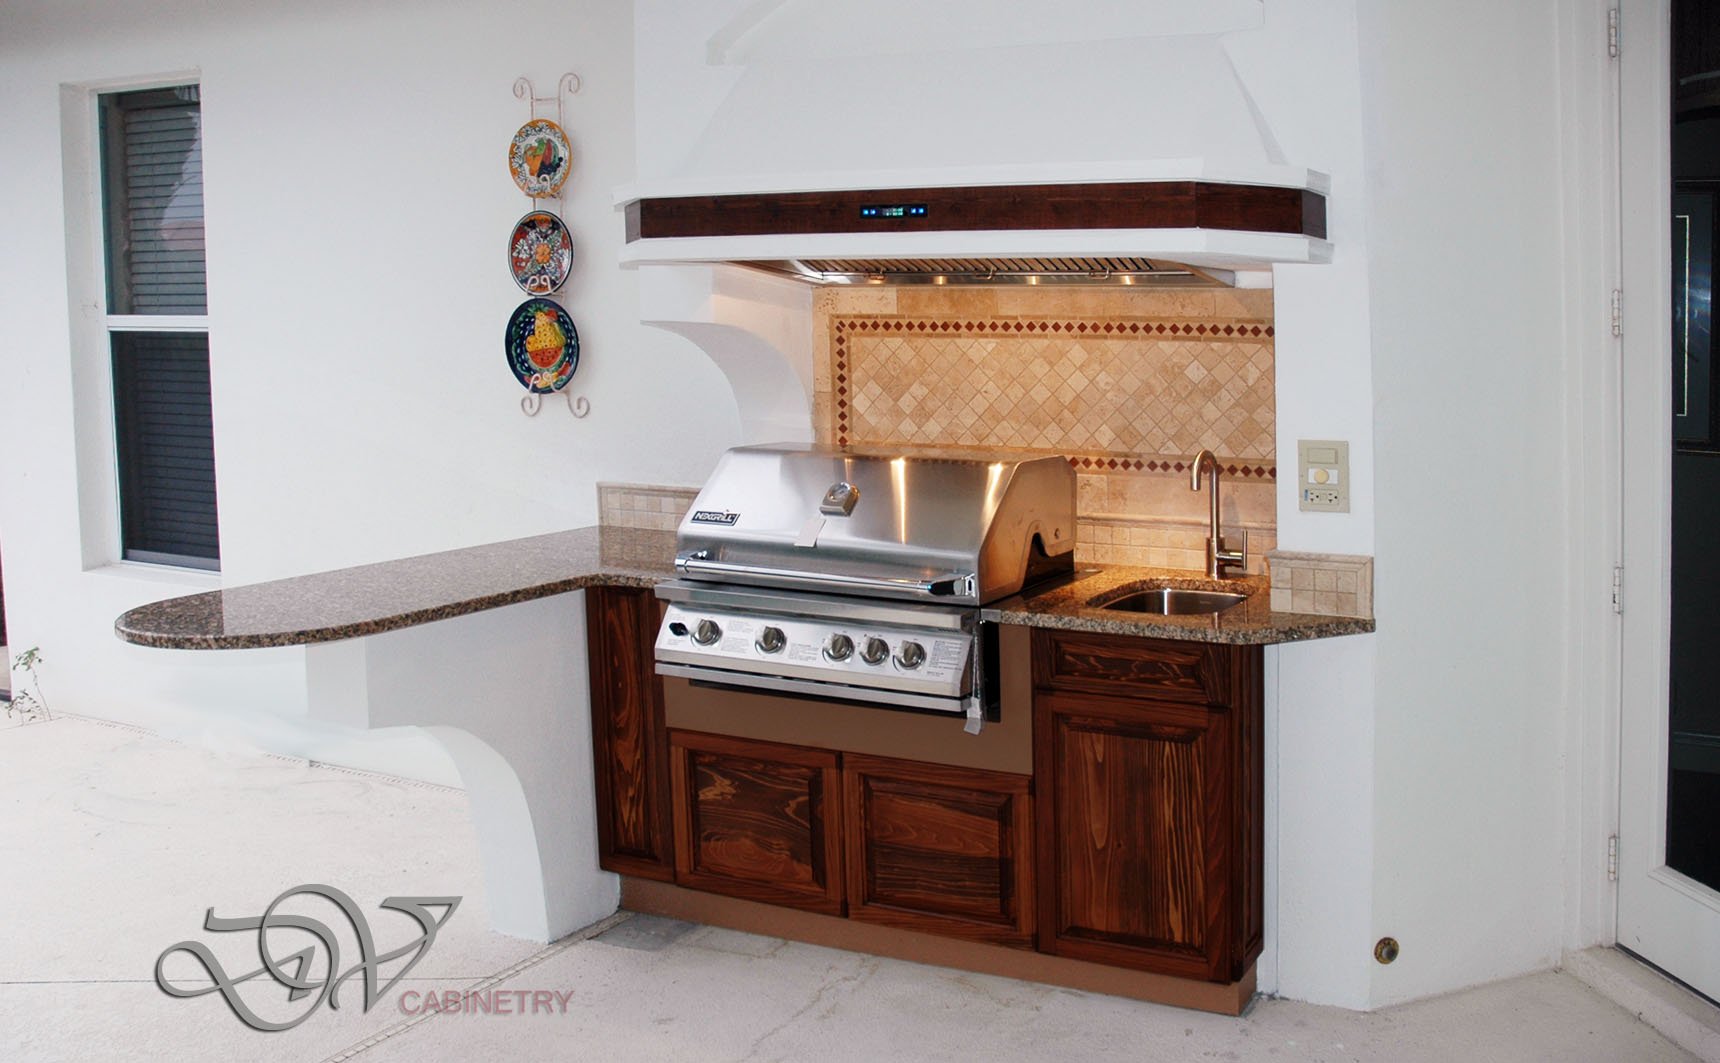 PWC outdoor kitchen cabinets